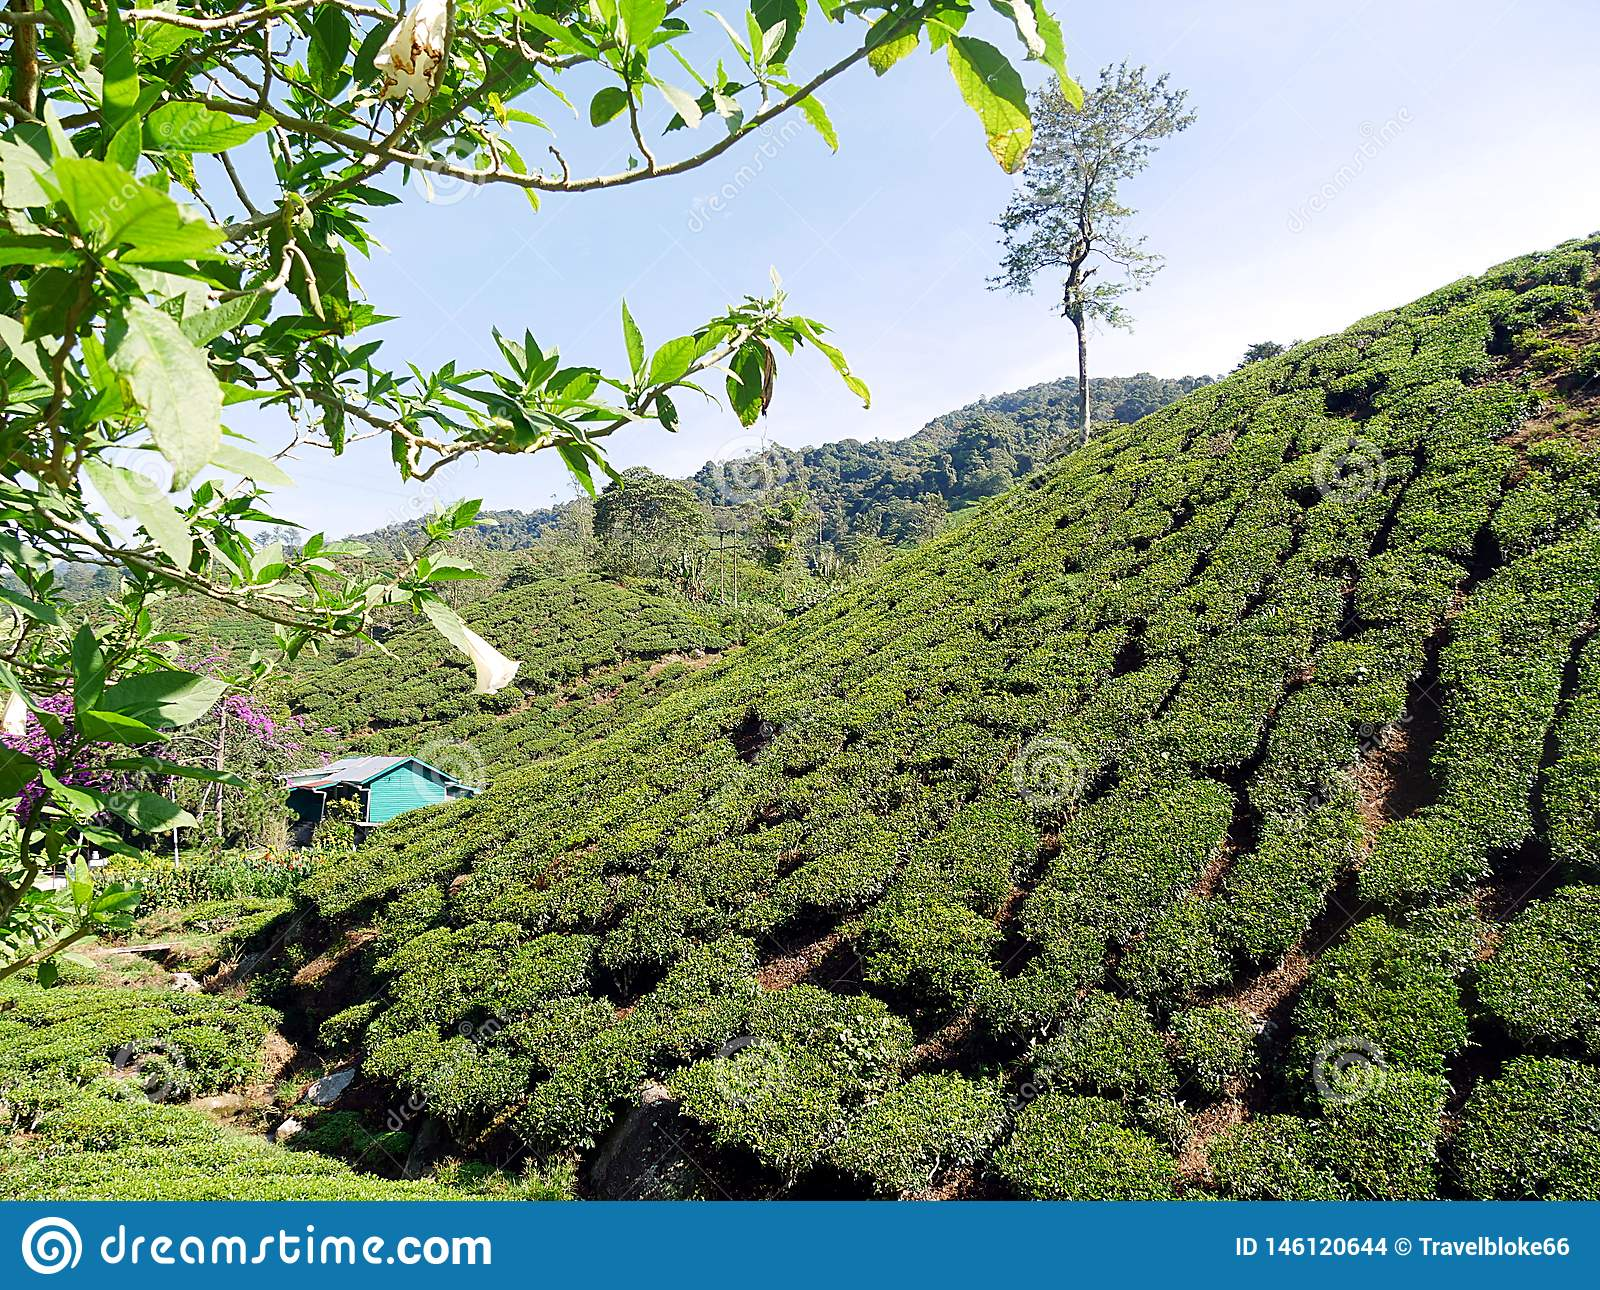 Tea Plantation in the Hills of Cameron Highlands Malaysia